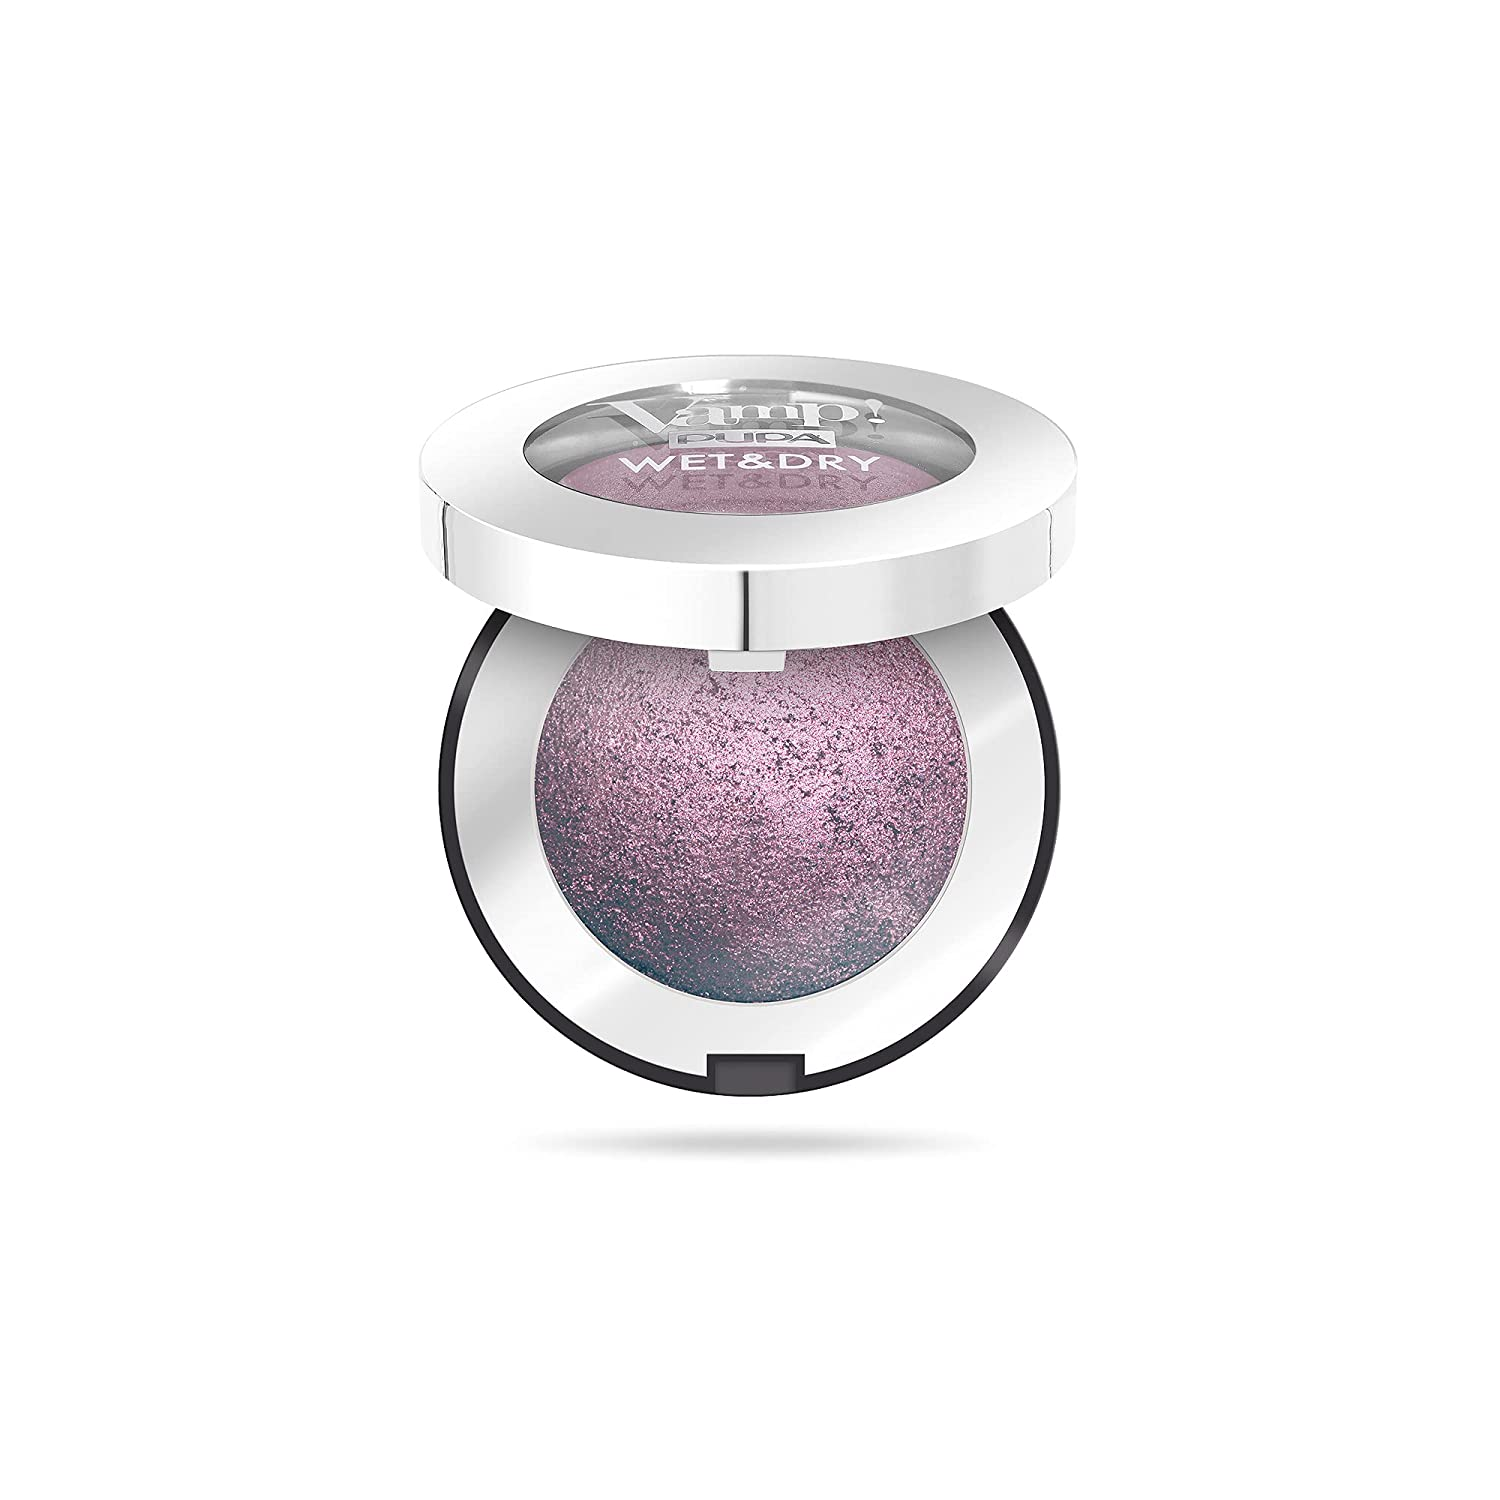 Vamp! Wet and Dry Baked Eyeshadow – 205 Hot Violet by Pupa Milano for Women – 0.035 oz Eye Shadow